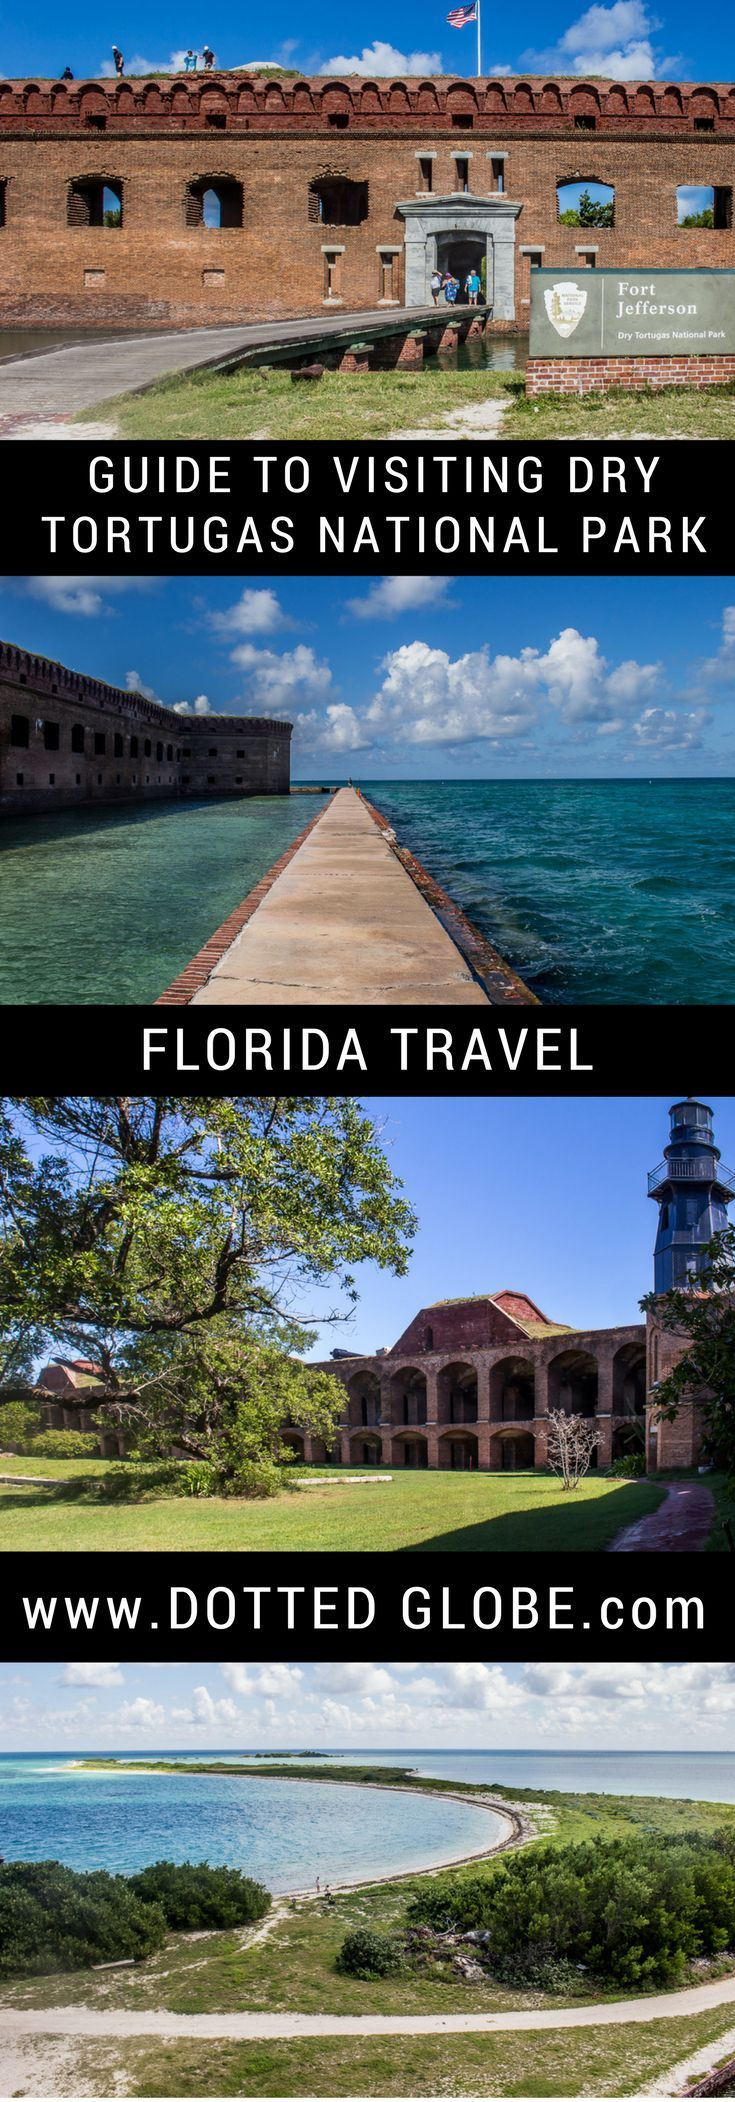 Visit Fort Jefferson and Dry Tortugas National Park in Florida. Take the Dry Tortugas ferry or seaplane from Key West. Snorkel, swim, tour Fort Jefferson, walk the moat and have a perfect day trip or camping trip in the beautiful waters of the Dry Tortugas.